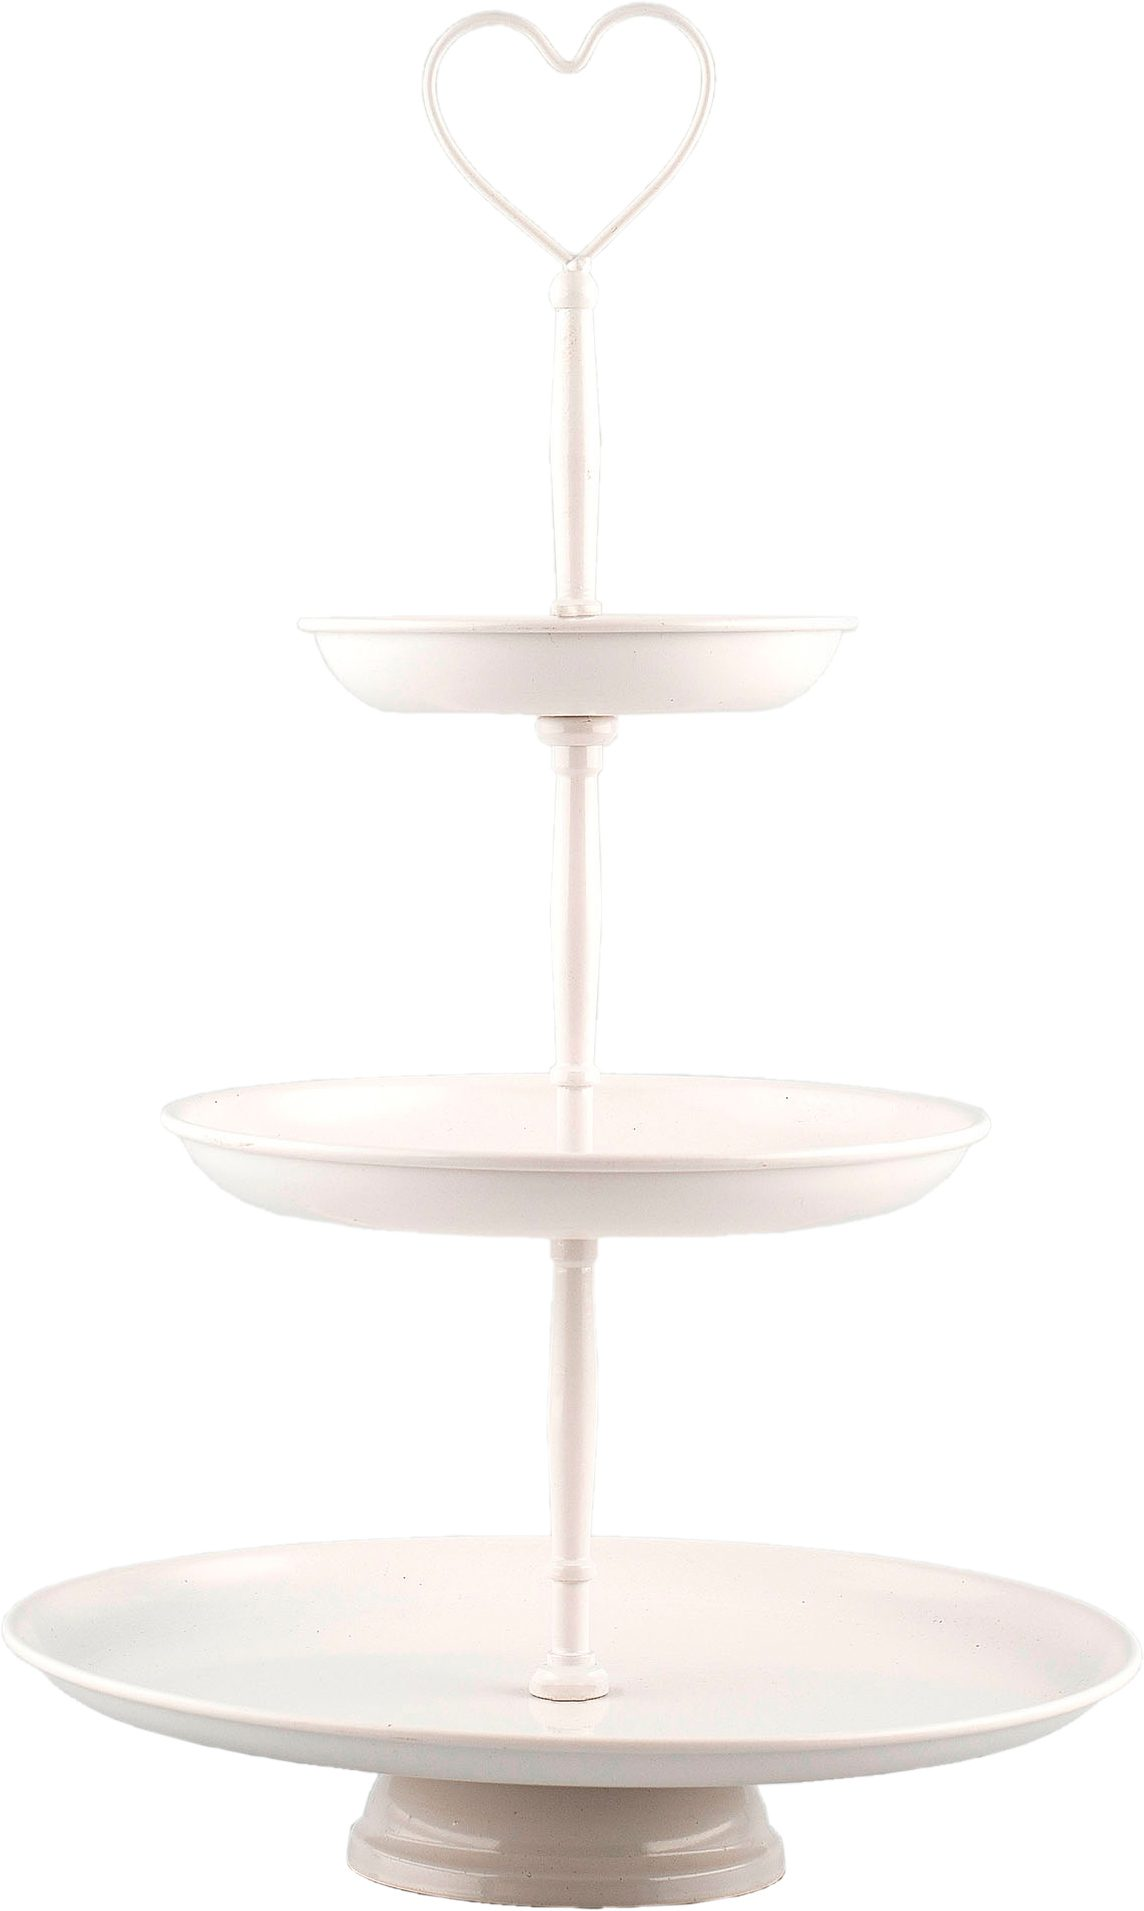 Home affaire Etagere (3-stufig)